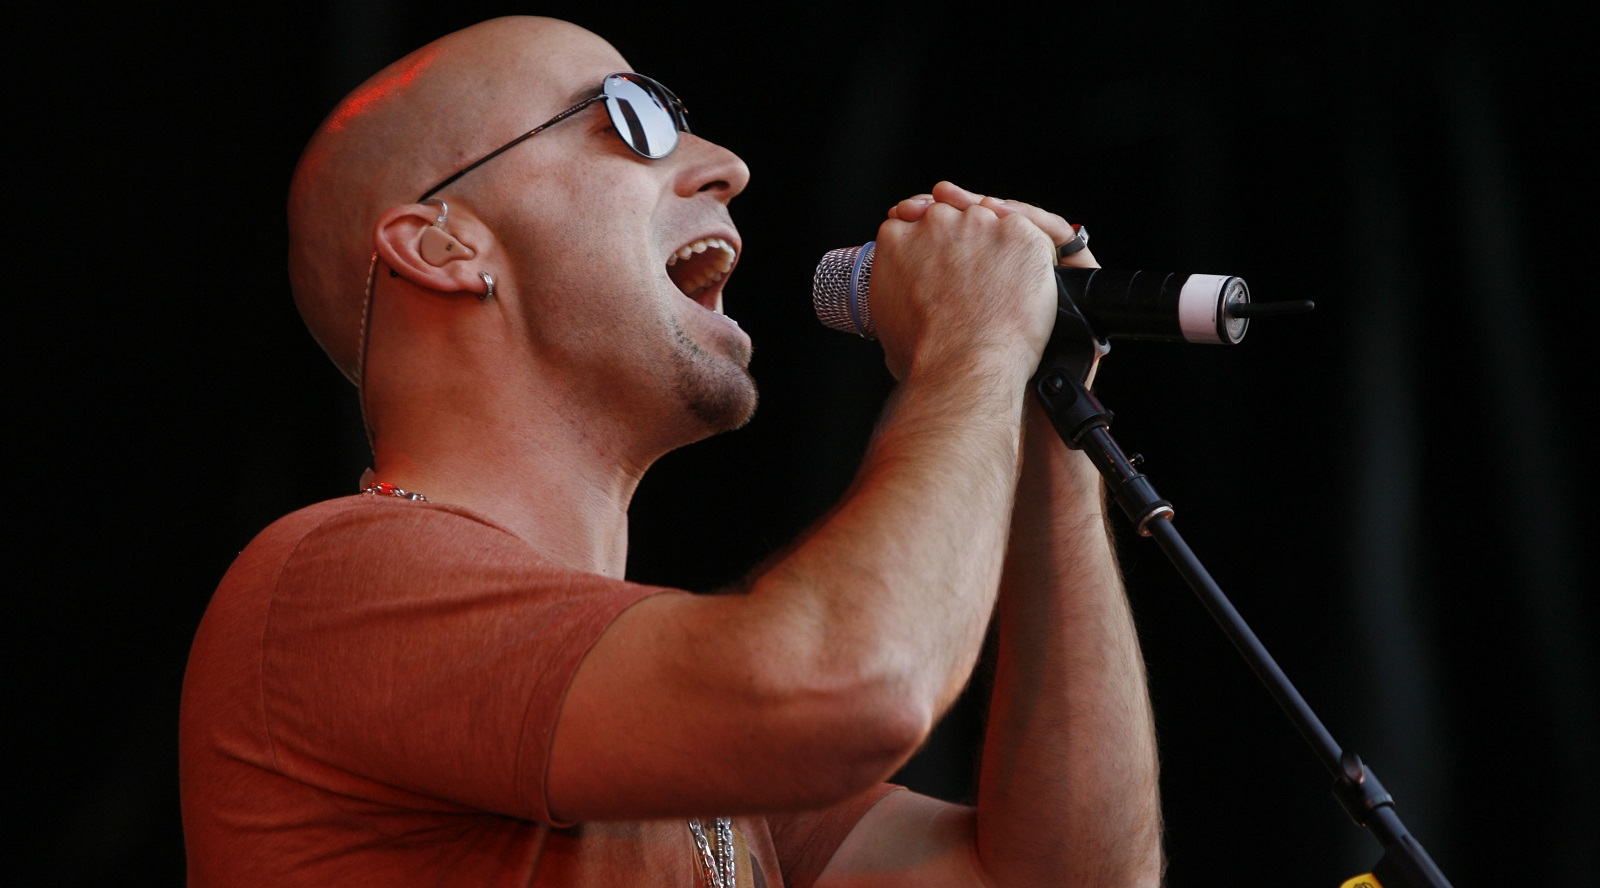 Ed Kowalczyk performs here in 2007 at Dunn Tire Park as part of Live. As concert reviewer Matt Chandler notes, Kowalczyk's career has changed drastically since then. (Robert Kirkham/Buffalo News file photo)